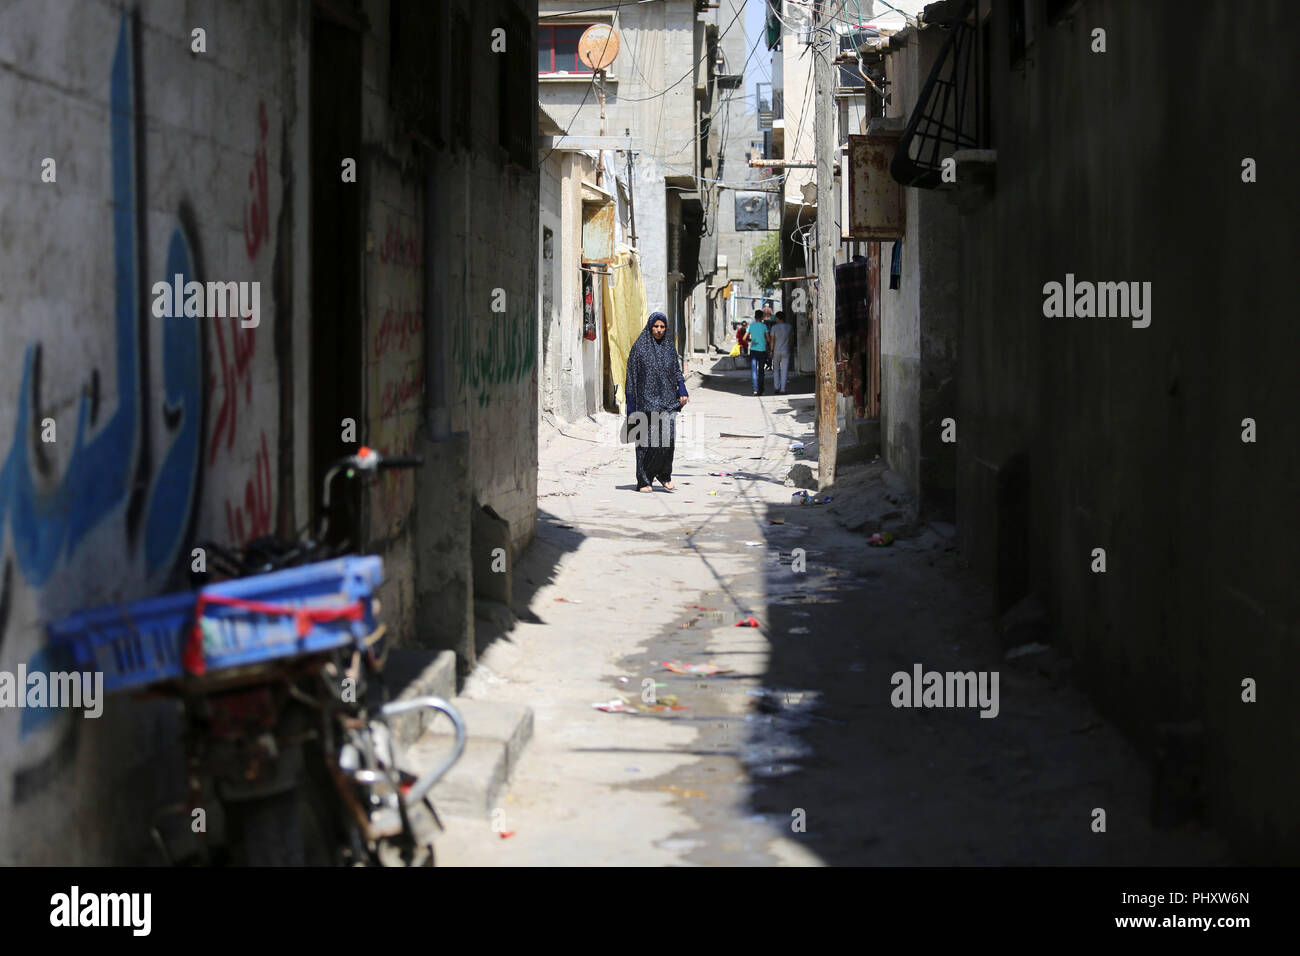 Gaza City, Gaza Strip, Palestinian Territory. 3rd Sep, 2018. A Palestinian refugee woman walks in a street at Al-Shati refugee camp, in Gaza City on September 3, 2018. The United States halted all funding to United Nations' agency that helps Palestinian refugees. State Department spokeswoman Heather Nauert said the business model and fiscal practices of the United Nations Relief and Works Agency (UNRWA) made it an 'irredeemably flawed operation Credit: Ashraf Amra/APA Images/ZUMA Wire/Alamy Live News - Stock Image